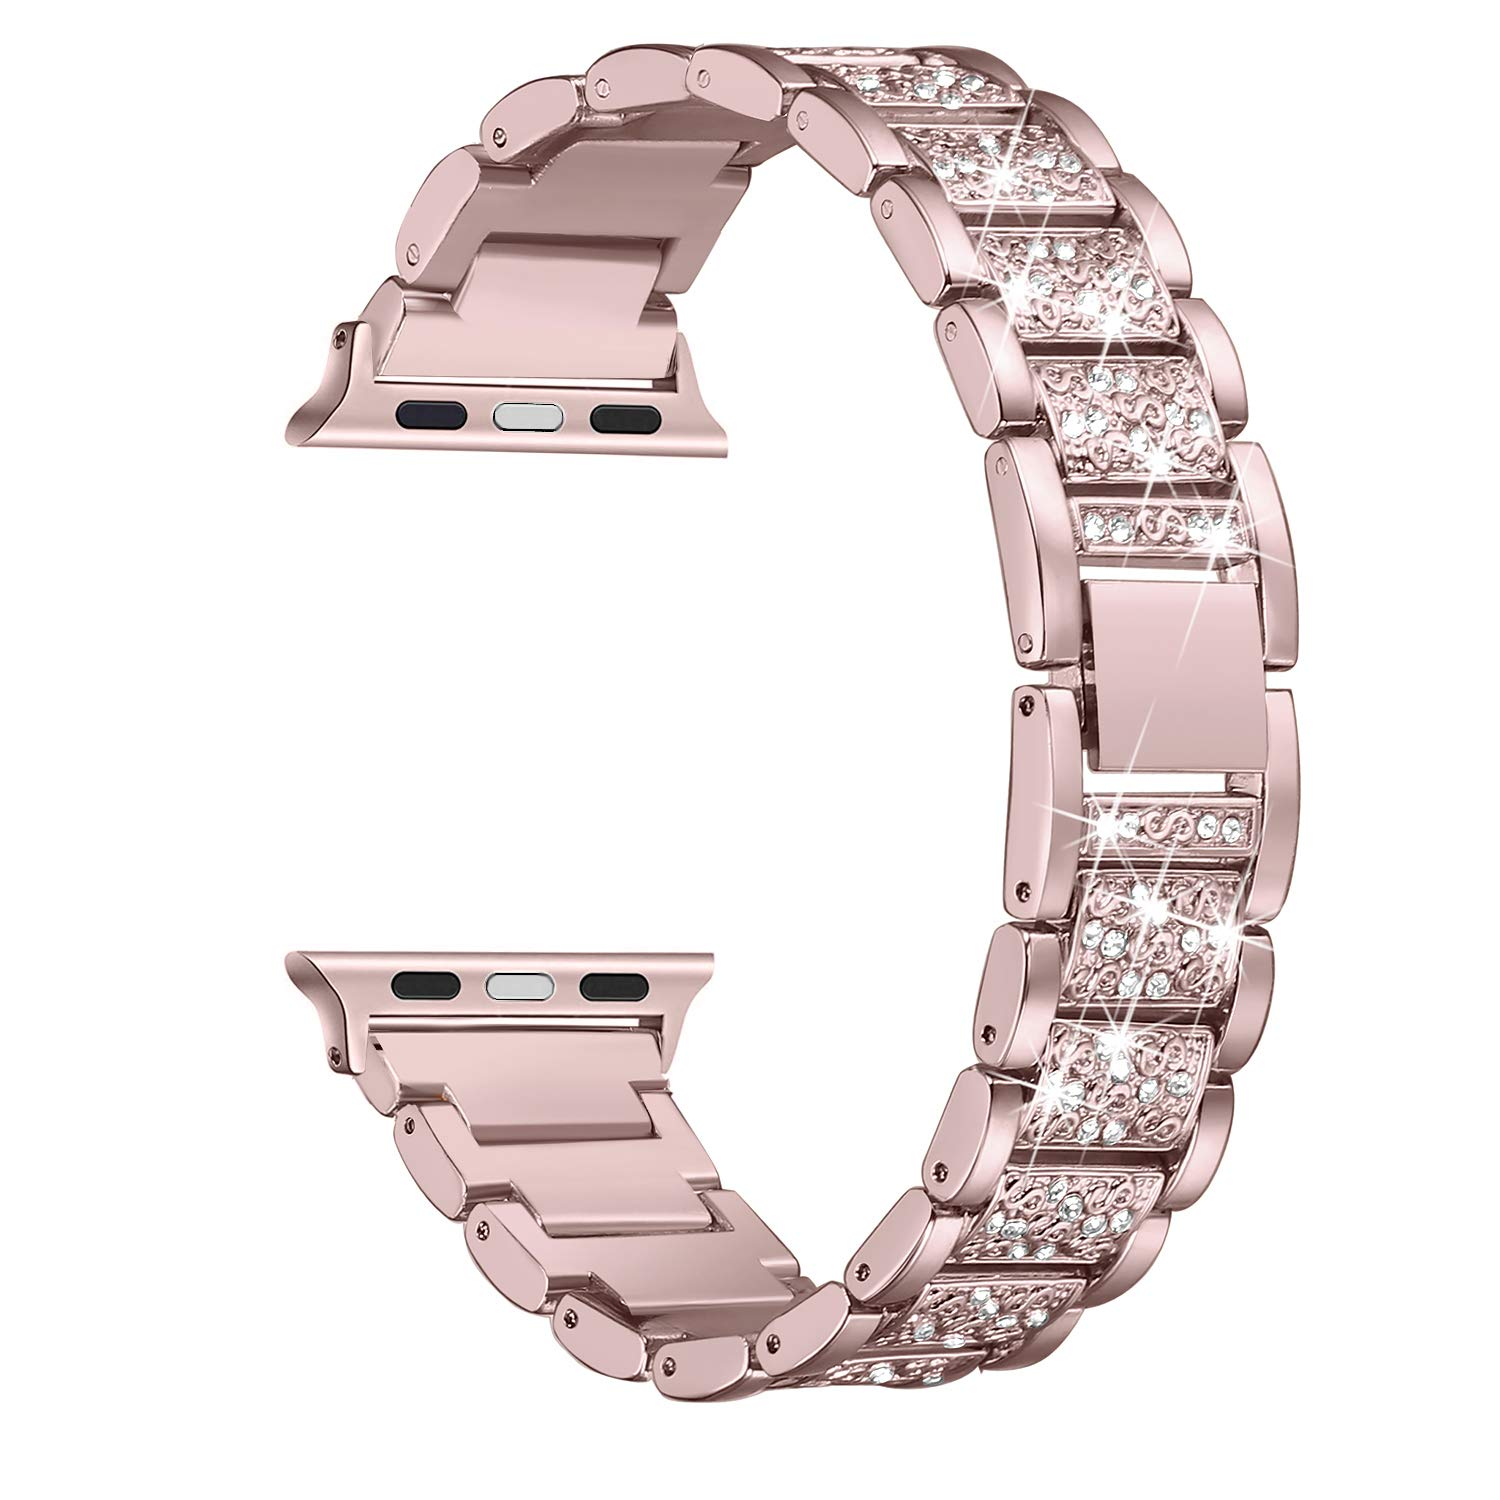 Secbolt Bling Bands Compatible Apple Watch Band 38mm 40mm Metal Replacement Wristband Compatible Iwatch Series 4 3 2 1, Rose Gold